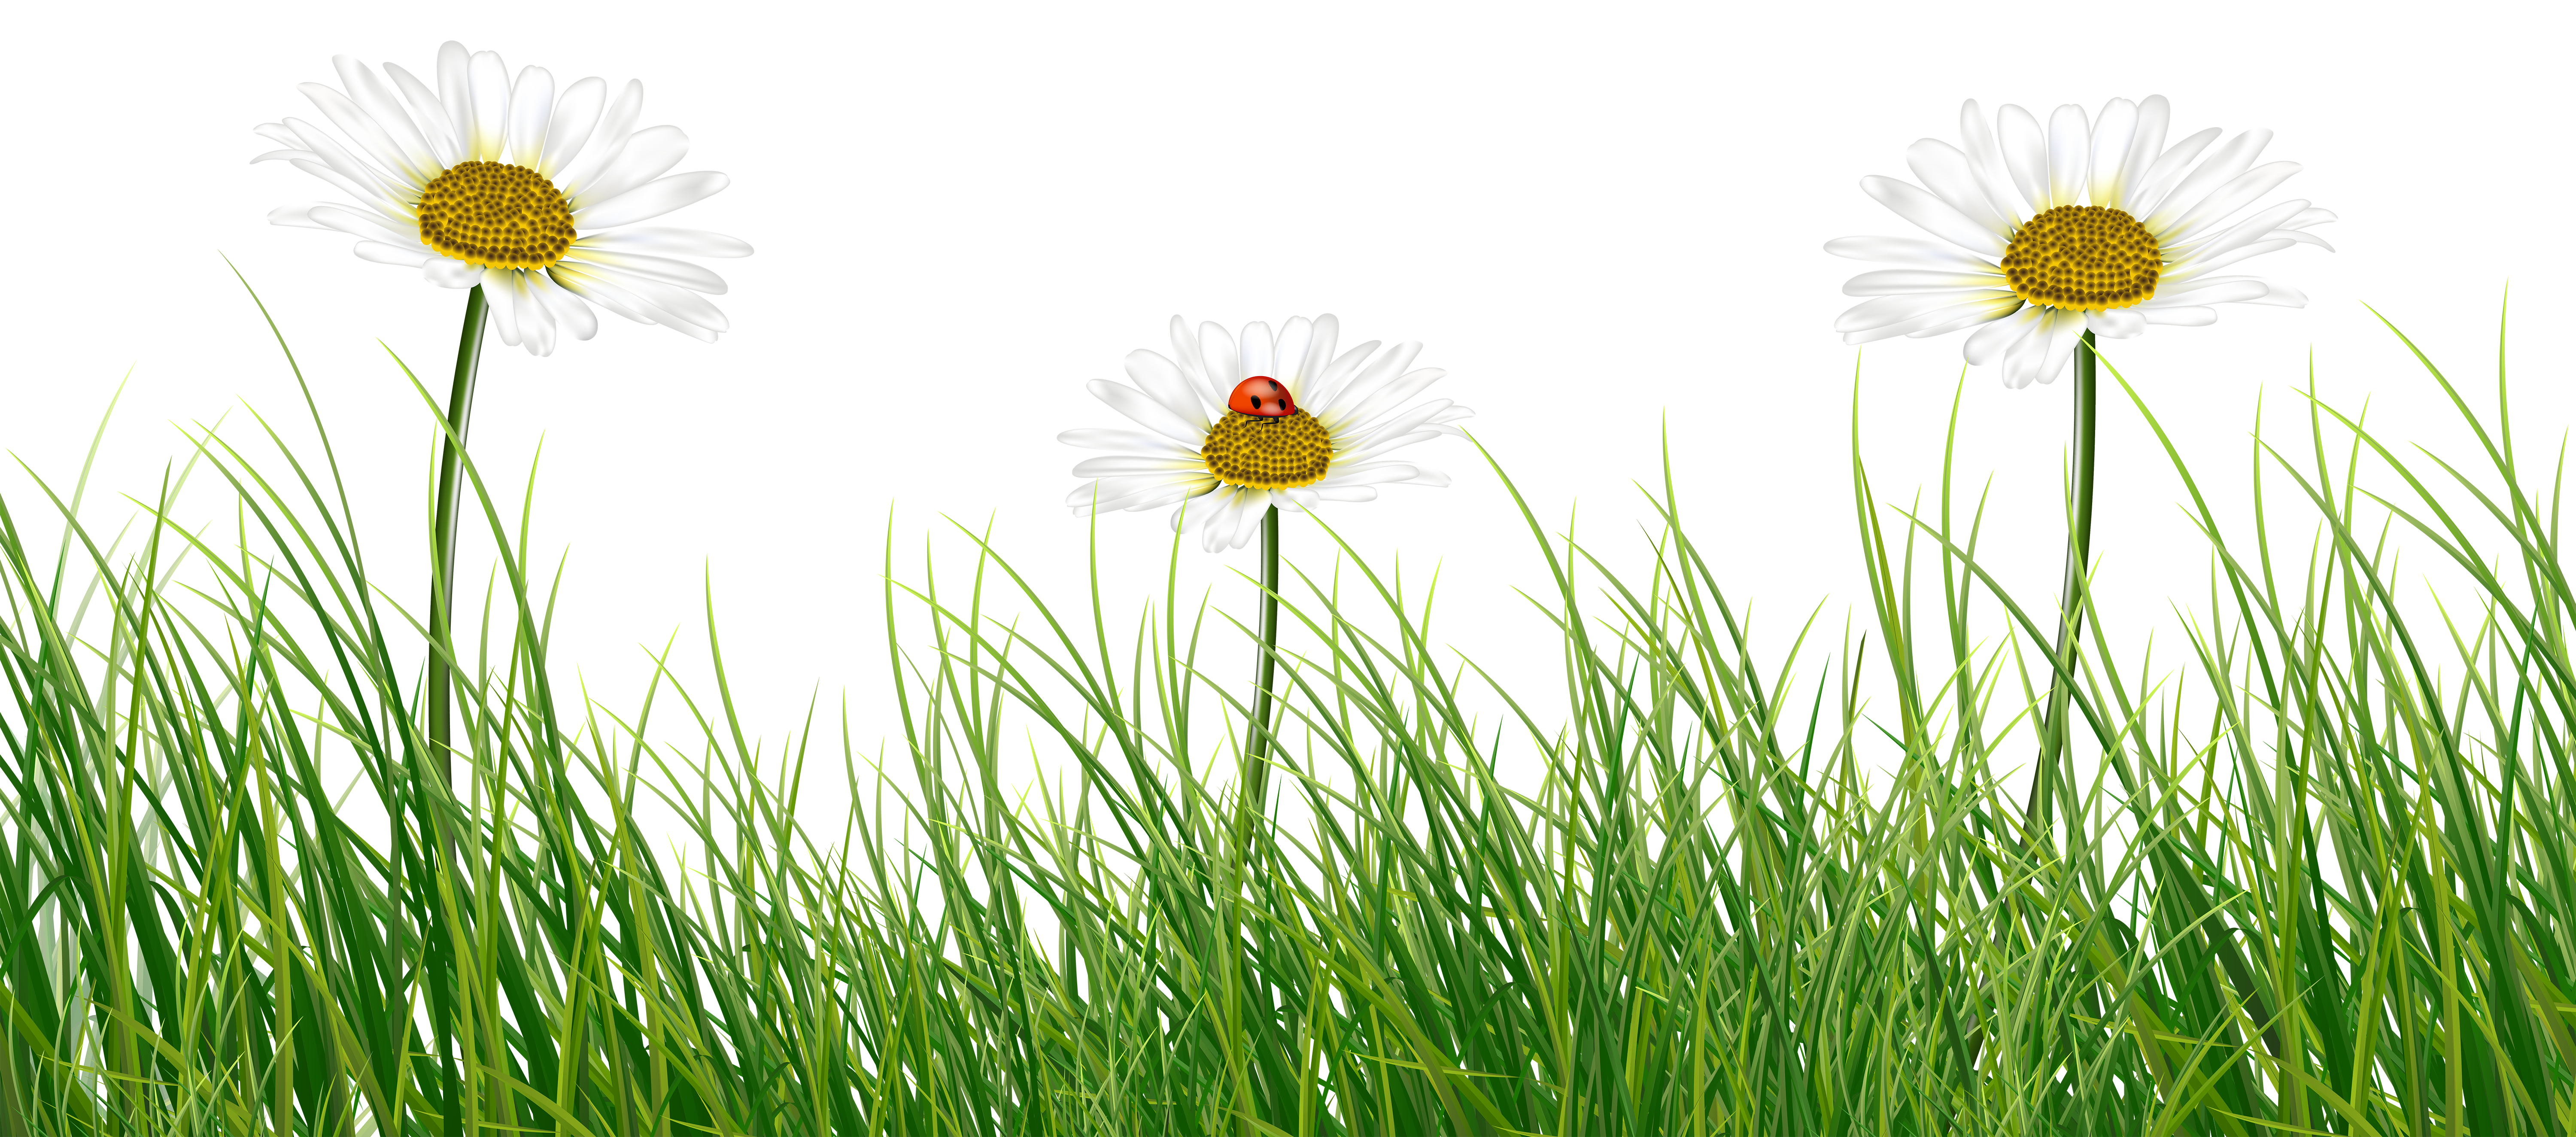 Ladybug on a flower clipart free banner library library Green Grass with Daisies and Ladybug | Gallery Yopriceville - High ... banner library library